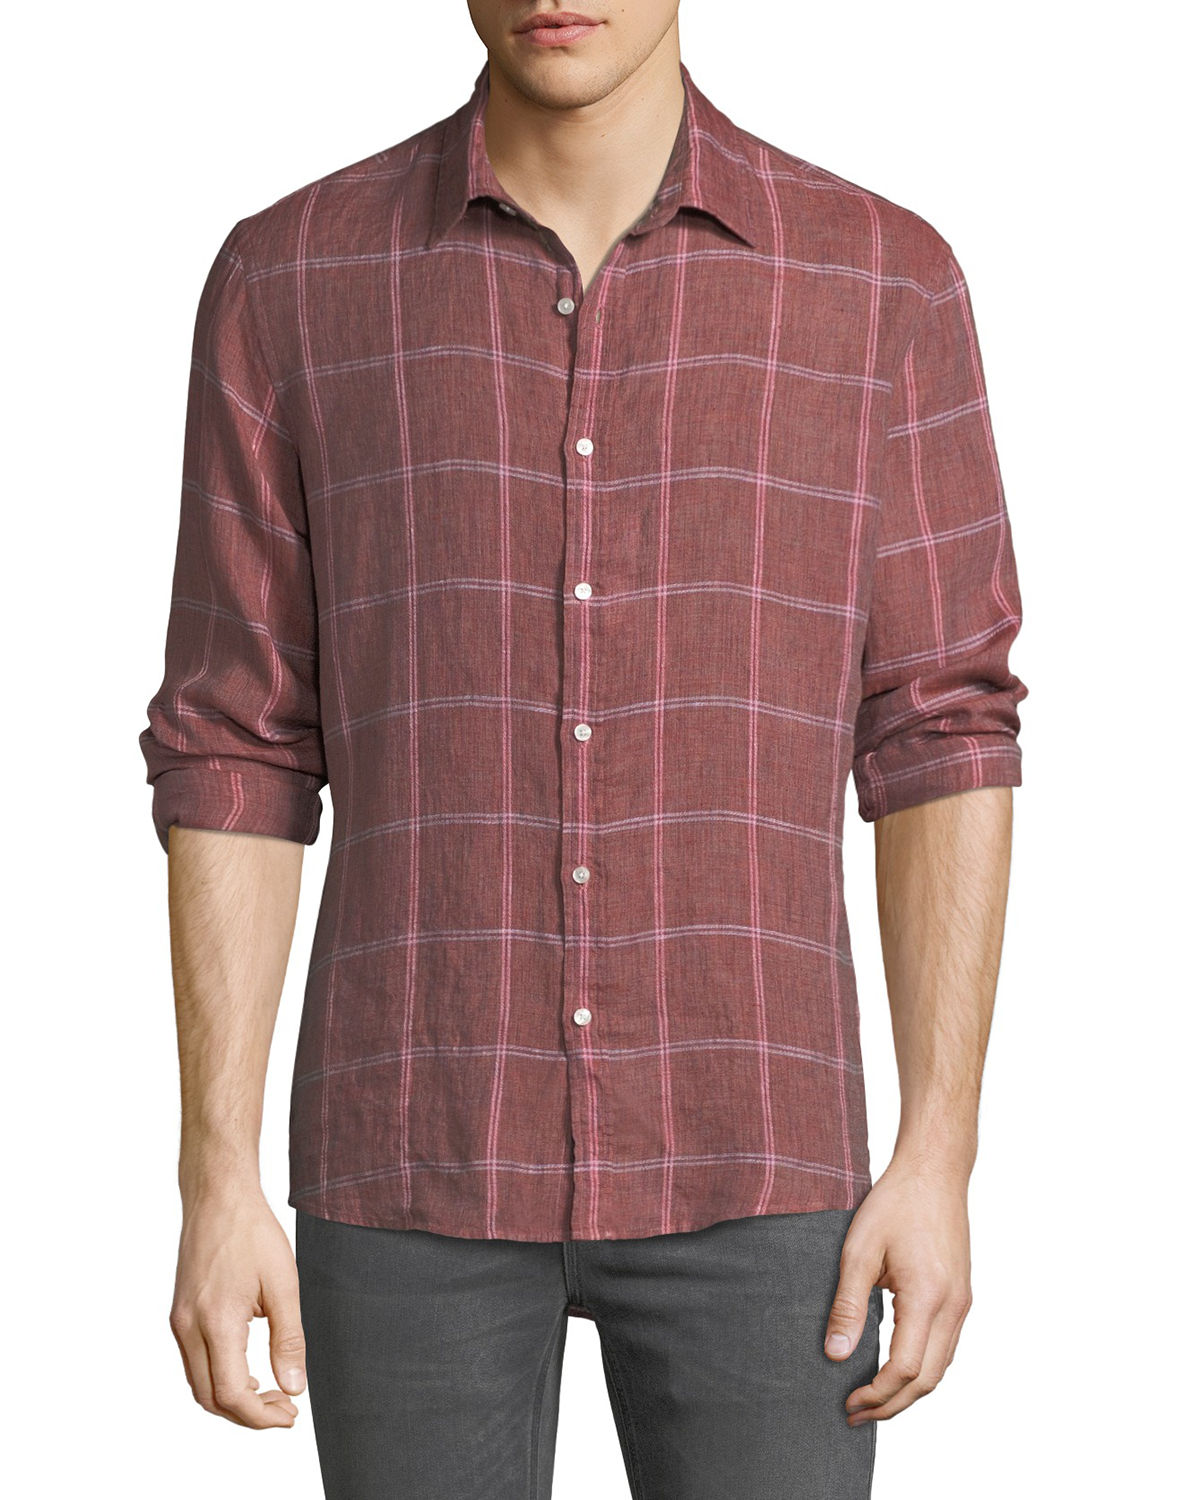 Men's Hartman Linen Plaid Button-Down Shirt